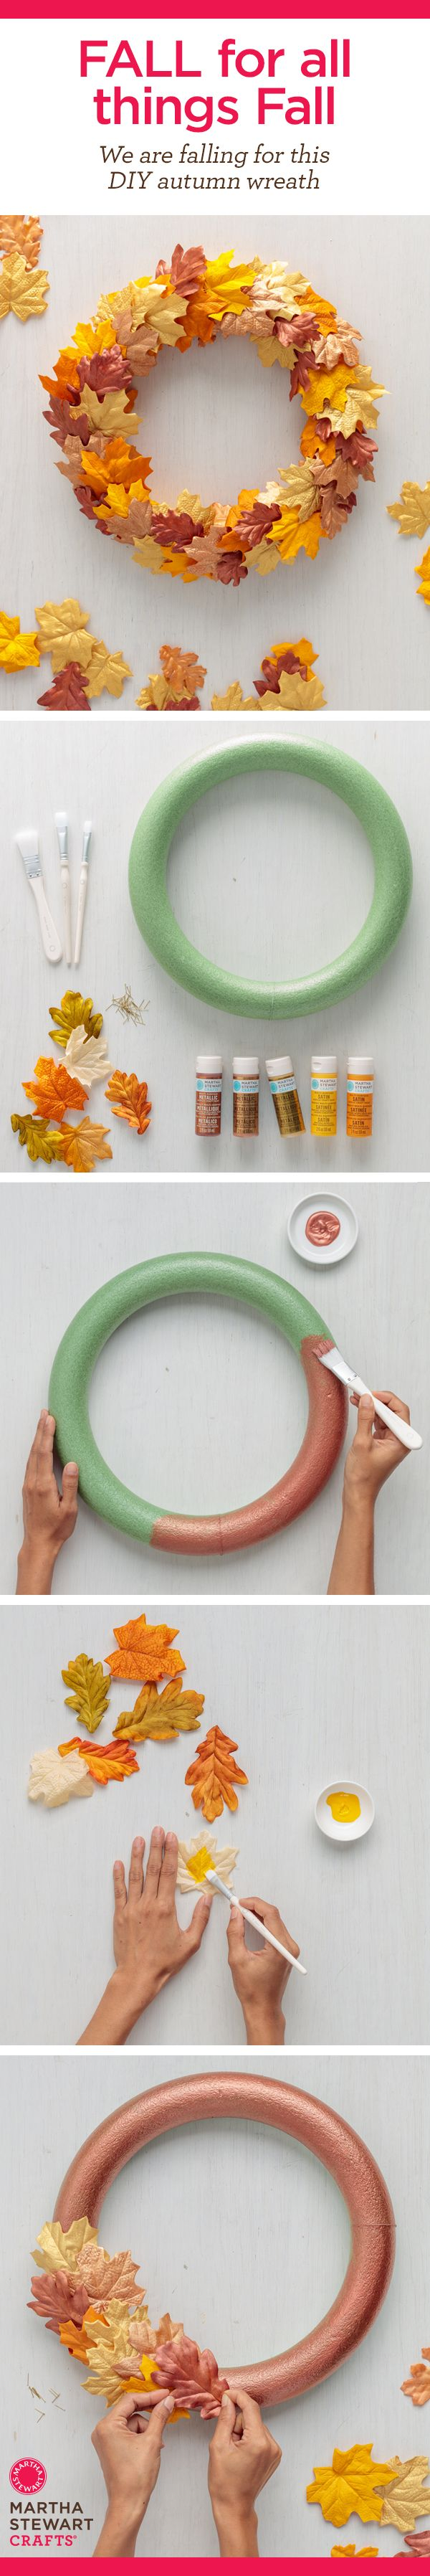 Craft Painting - Easy Stencil Project - DIY Fall Leaf Wreath from Martha Stewart's Mad About DIY November. A great Thanksgiving decor project for this Autumn!